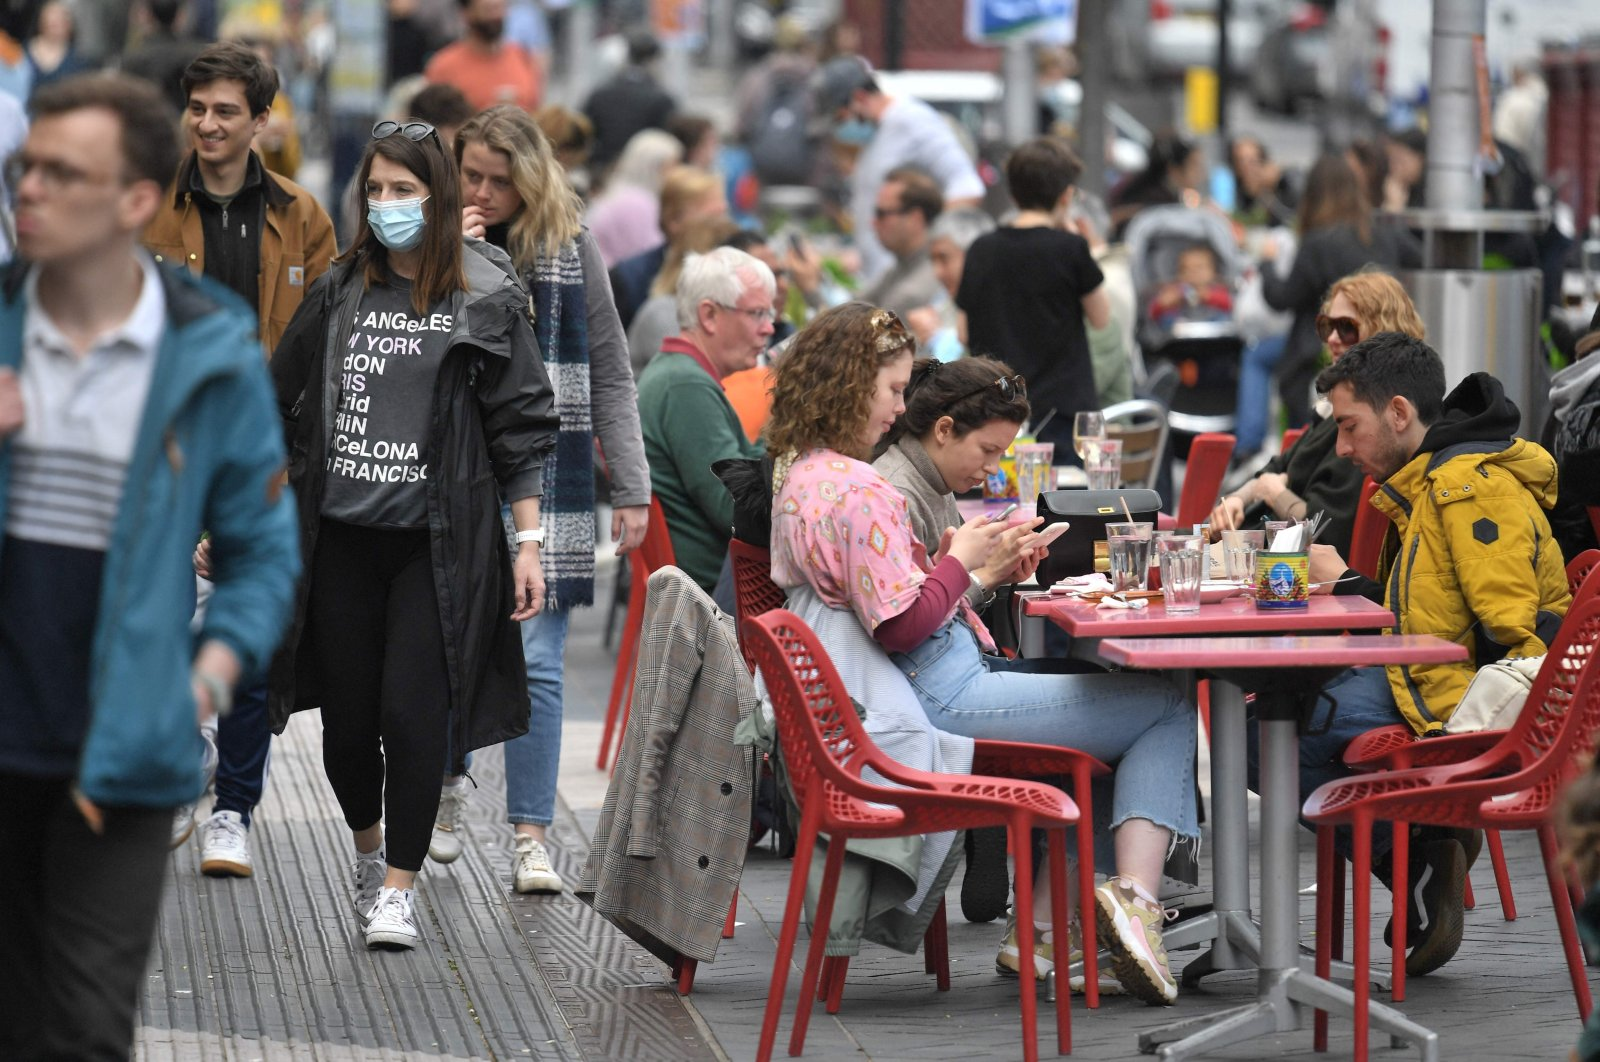 Members of the public enjoy refreshments at tables set up outside a cafe in south Kensington, London, U.K., May 18, 2021. (AFP Photo)